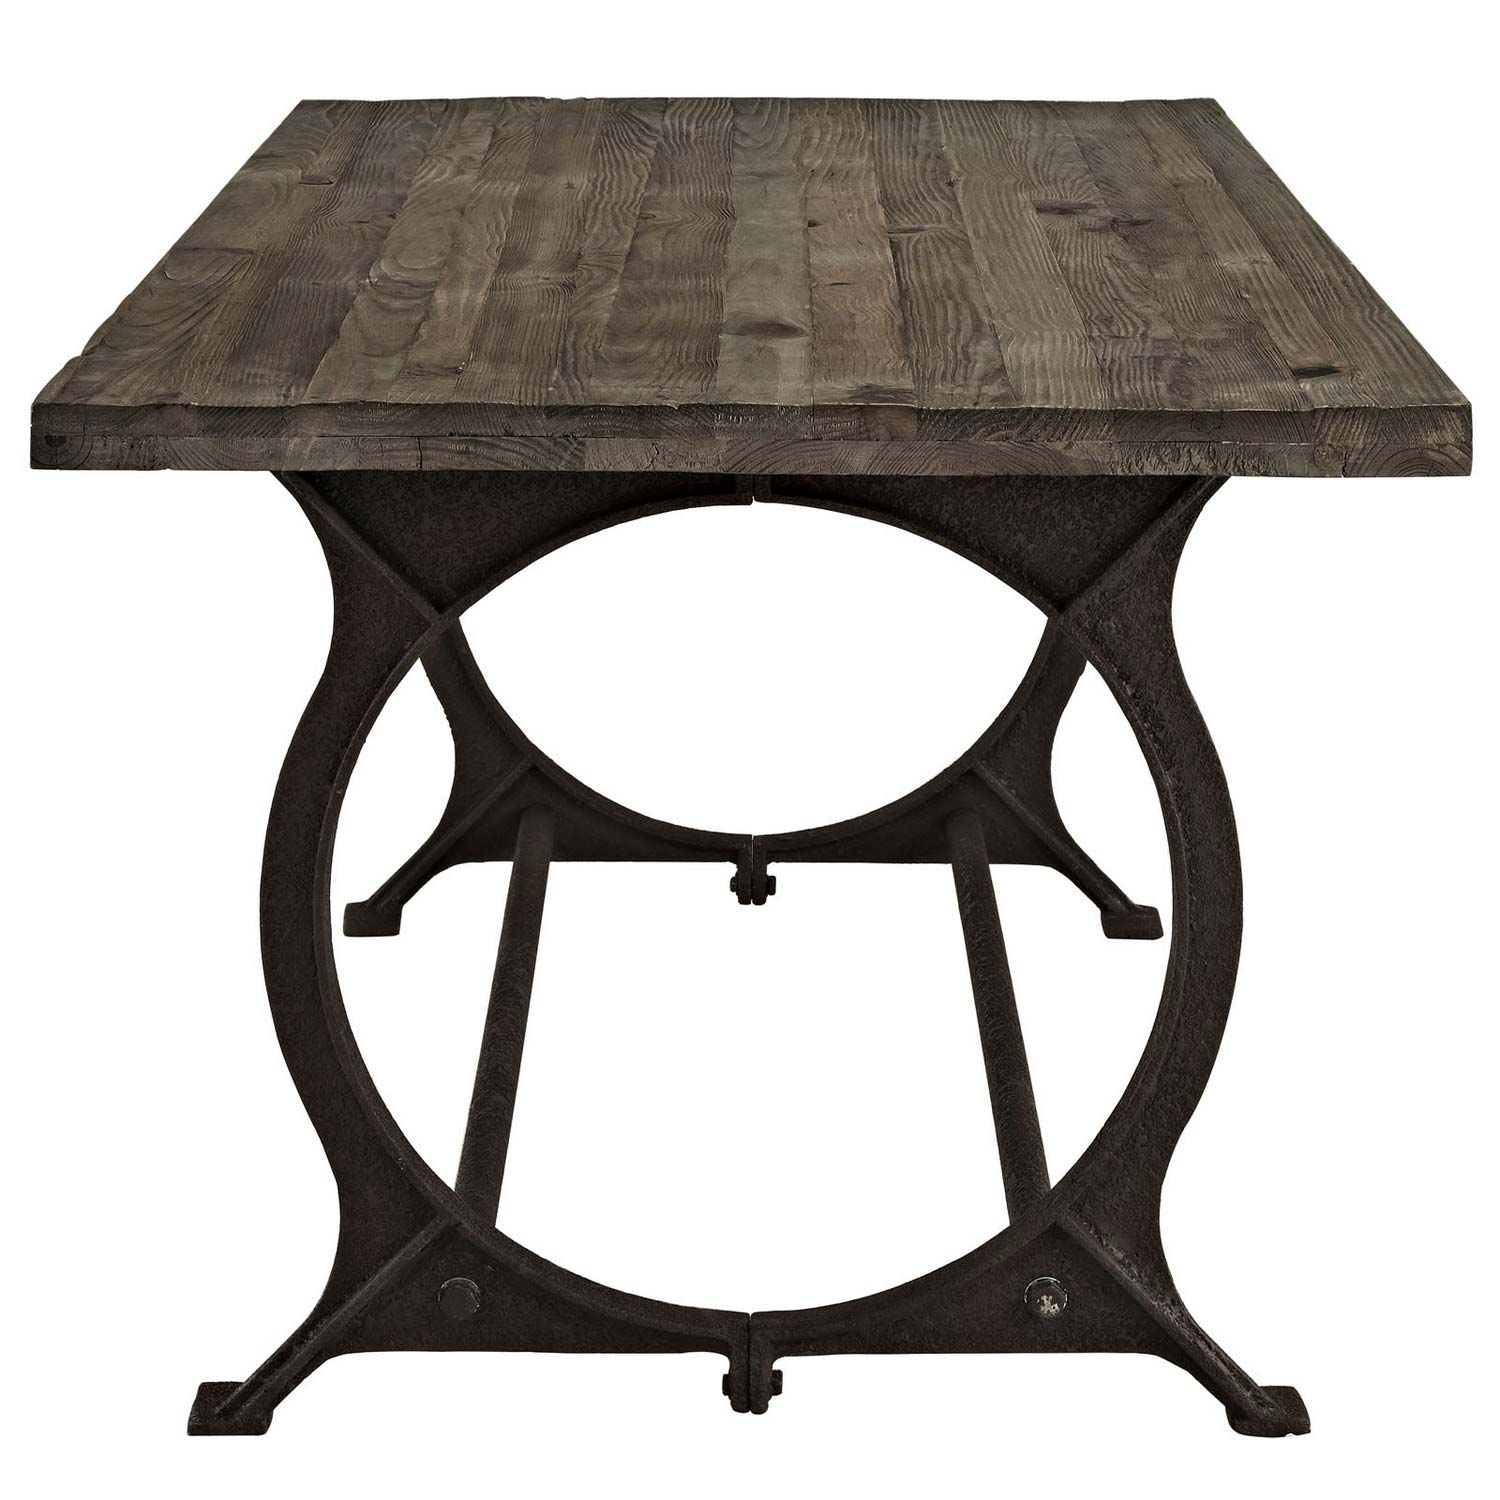 Modway Effuse Wood Top Dining Table - Brown